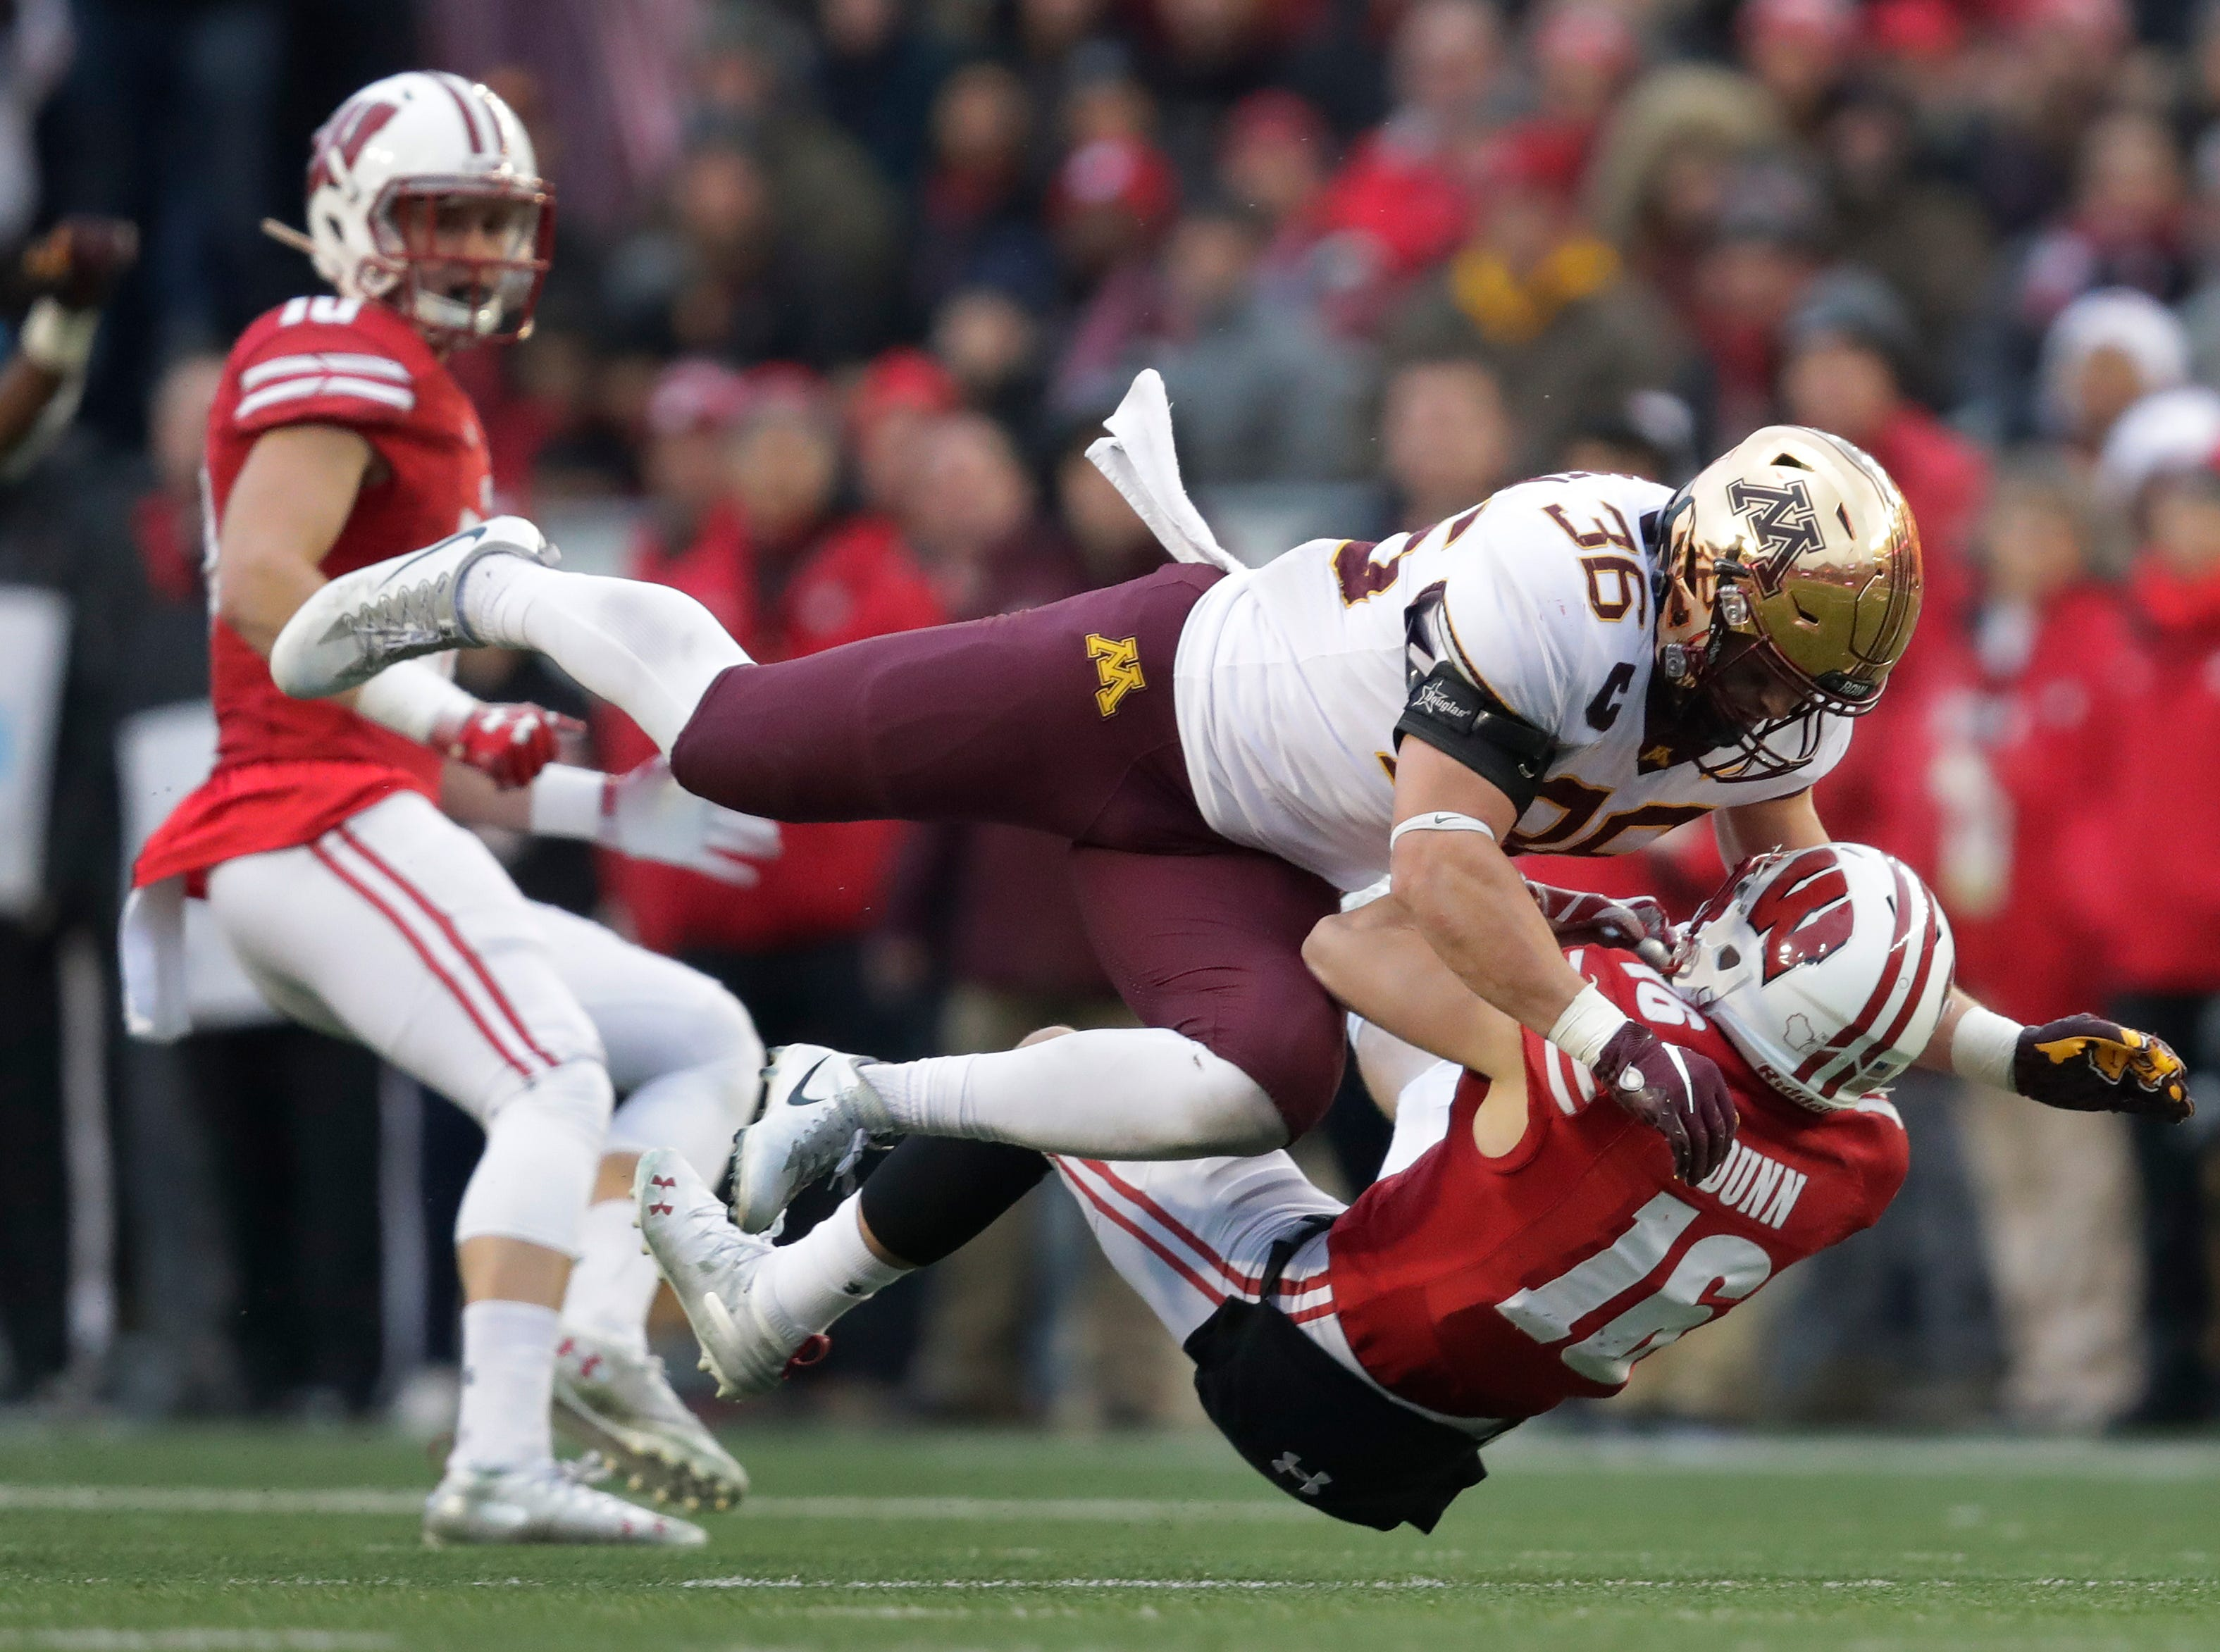 Wisconsin wide receiver Jack Dunn (16) is hit on a punt return by Minnesota linebacker Blake Cashman (36) during the second quarter Saturday, November 24, 2018, at Camp Randall Stadium in Madison, Wis. Cashman was penalized for targeting and was ejected from the game.Dan Powers/USA TODAY NETWORK-Wisconsin